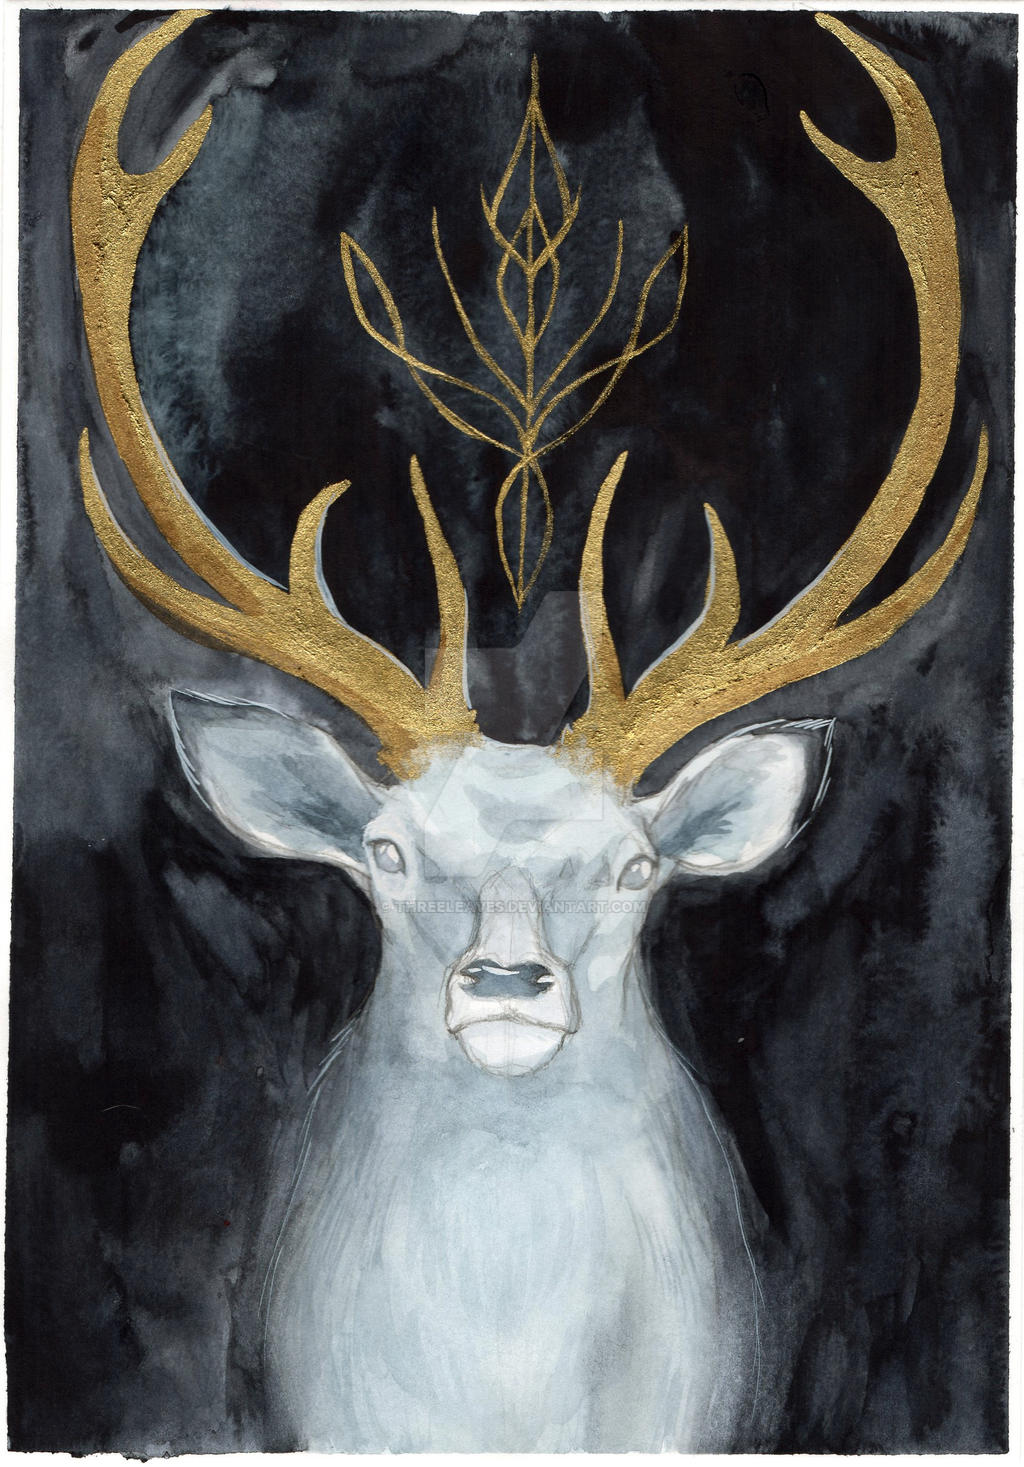 Watercolor painting of a deer with golden antlers.